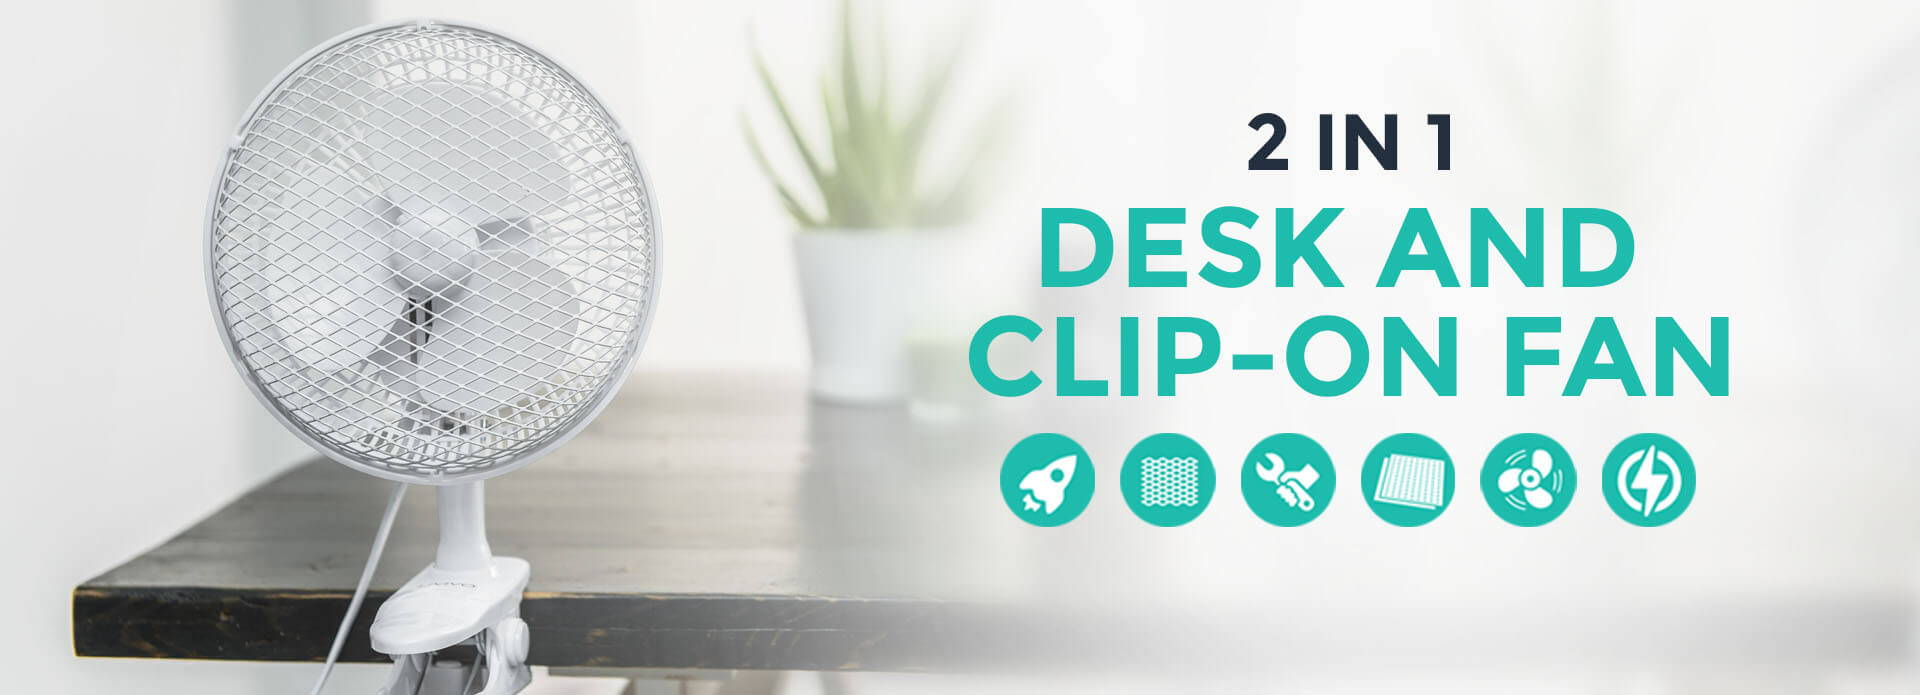 2-in-1 Desk and Clip-on Fan